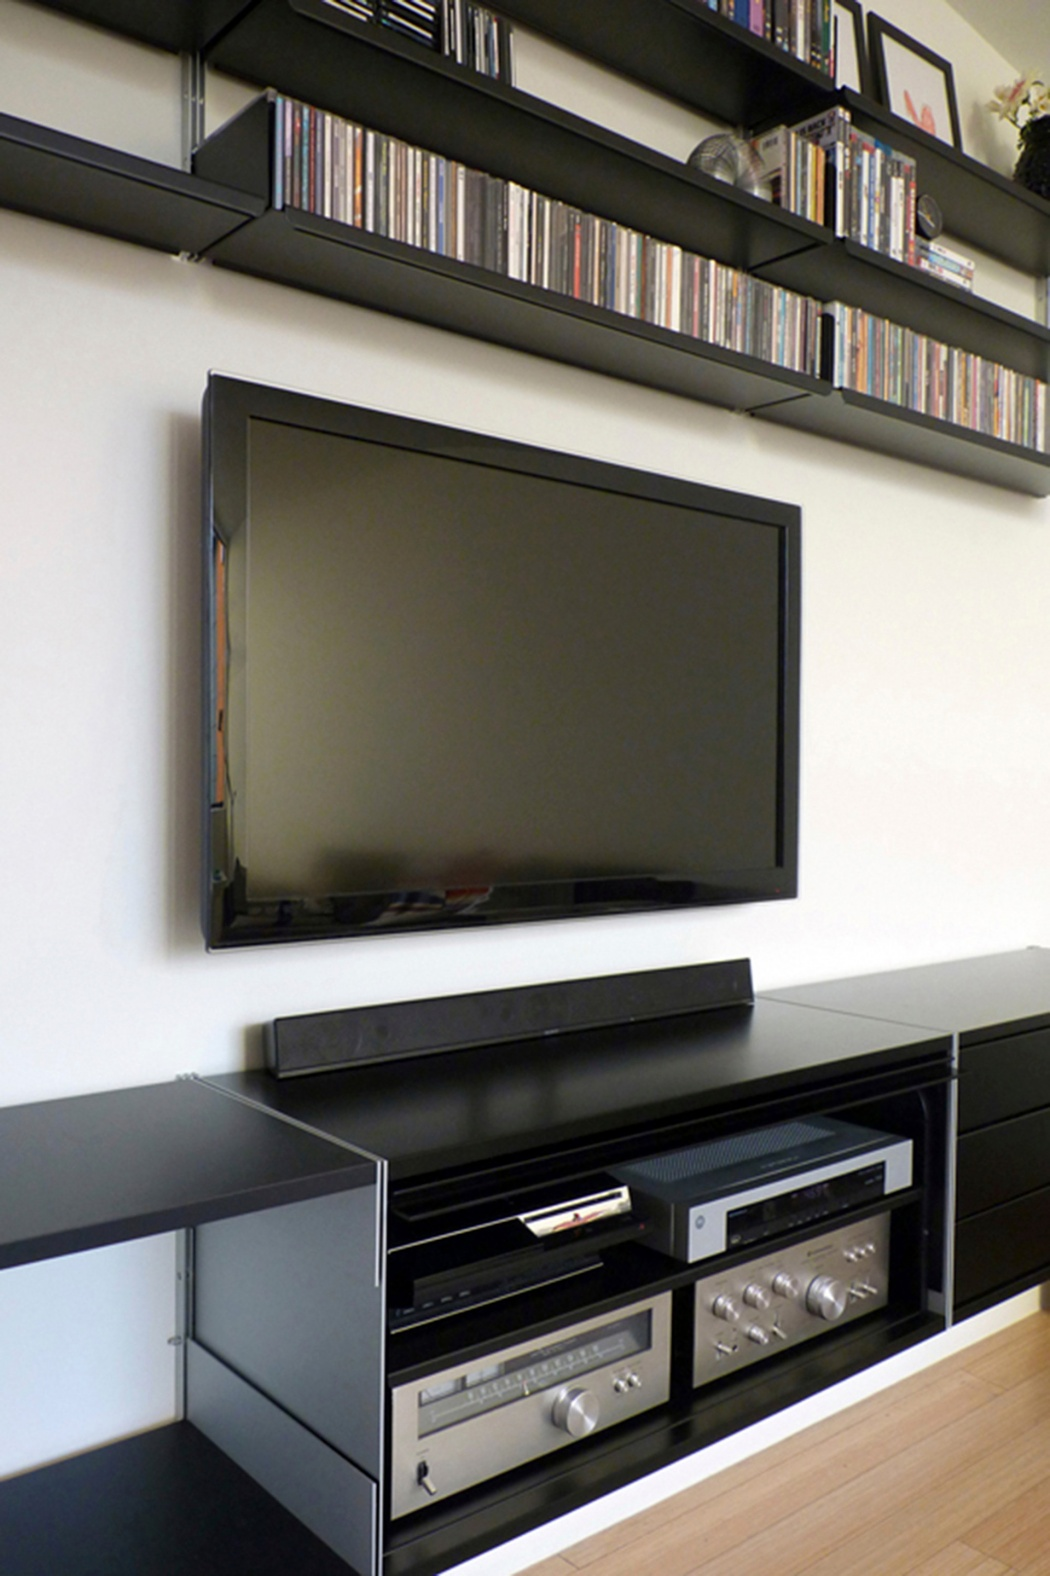 Larger televisions can be mounted directly to your wall. We can plan a shelving system for your DVDs and equipment. Cabinet with up-and-over door is perfect for use with remote control. Our planning service is free: vitsoe.com/planning